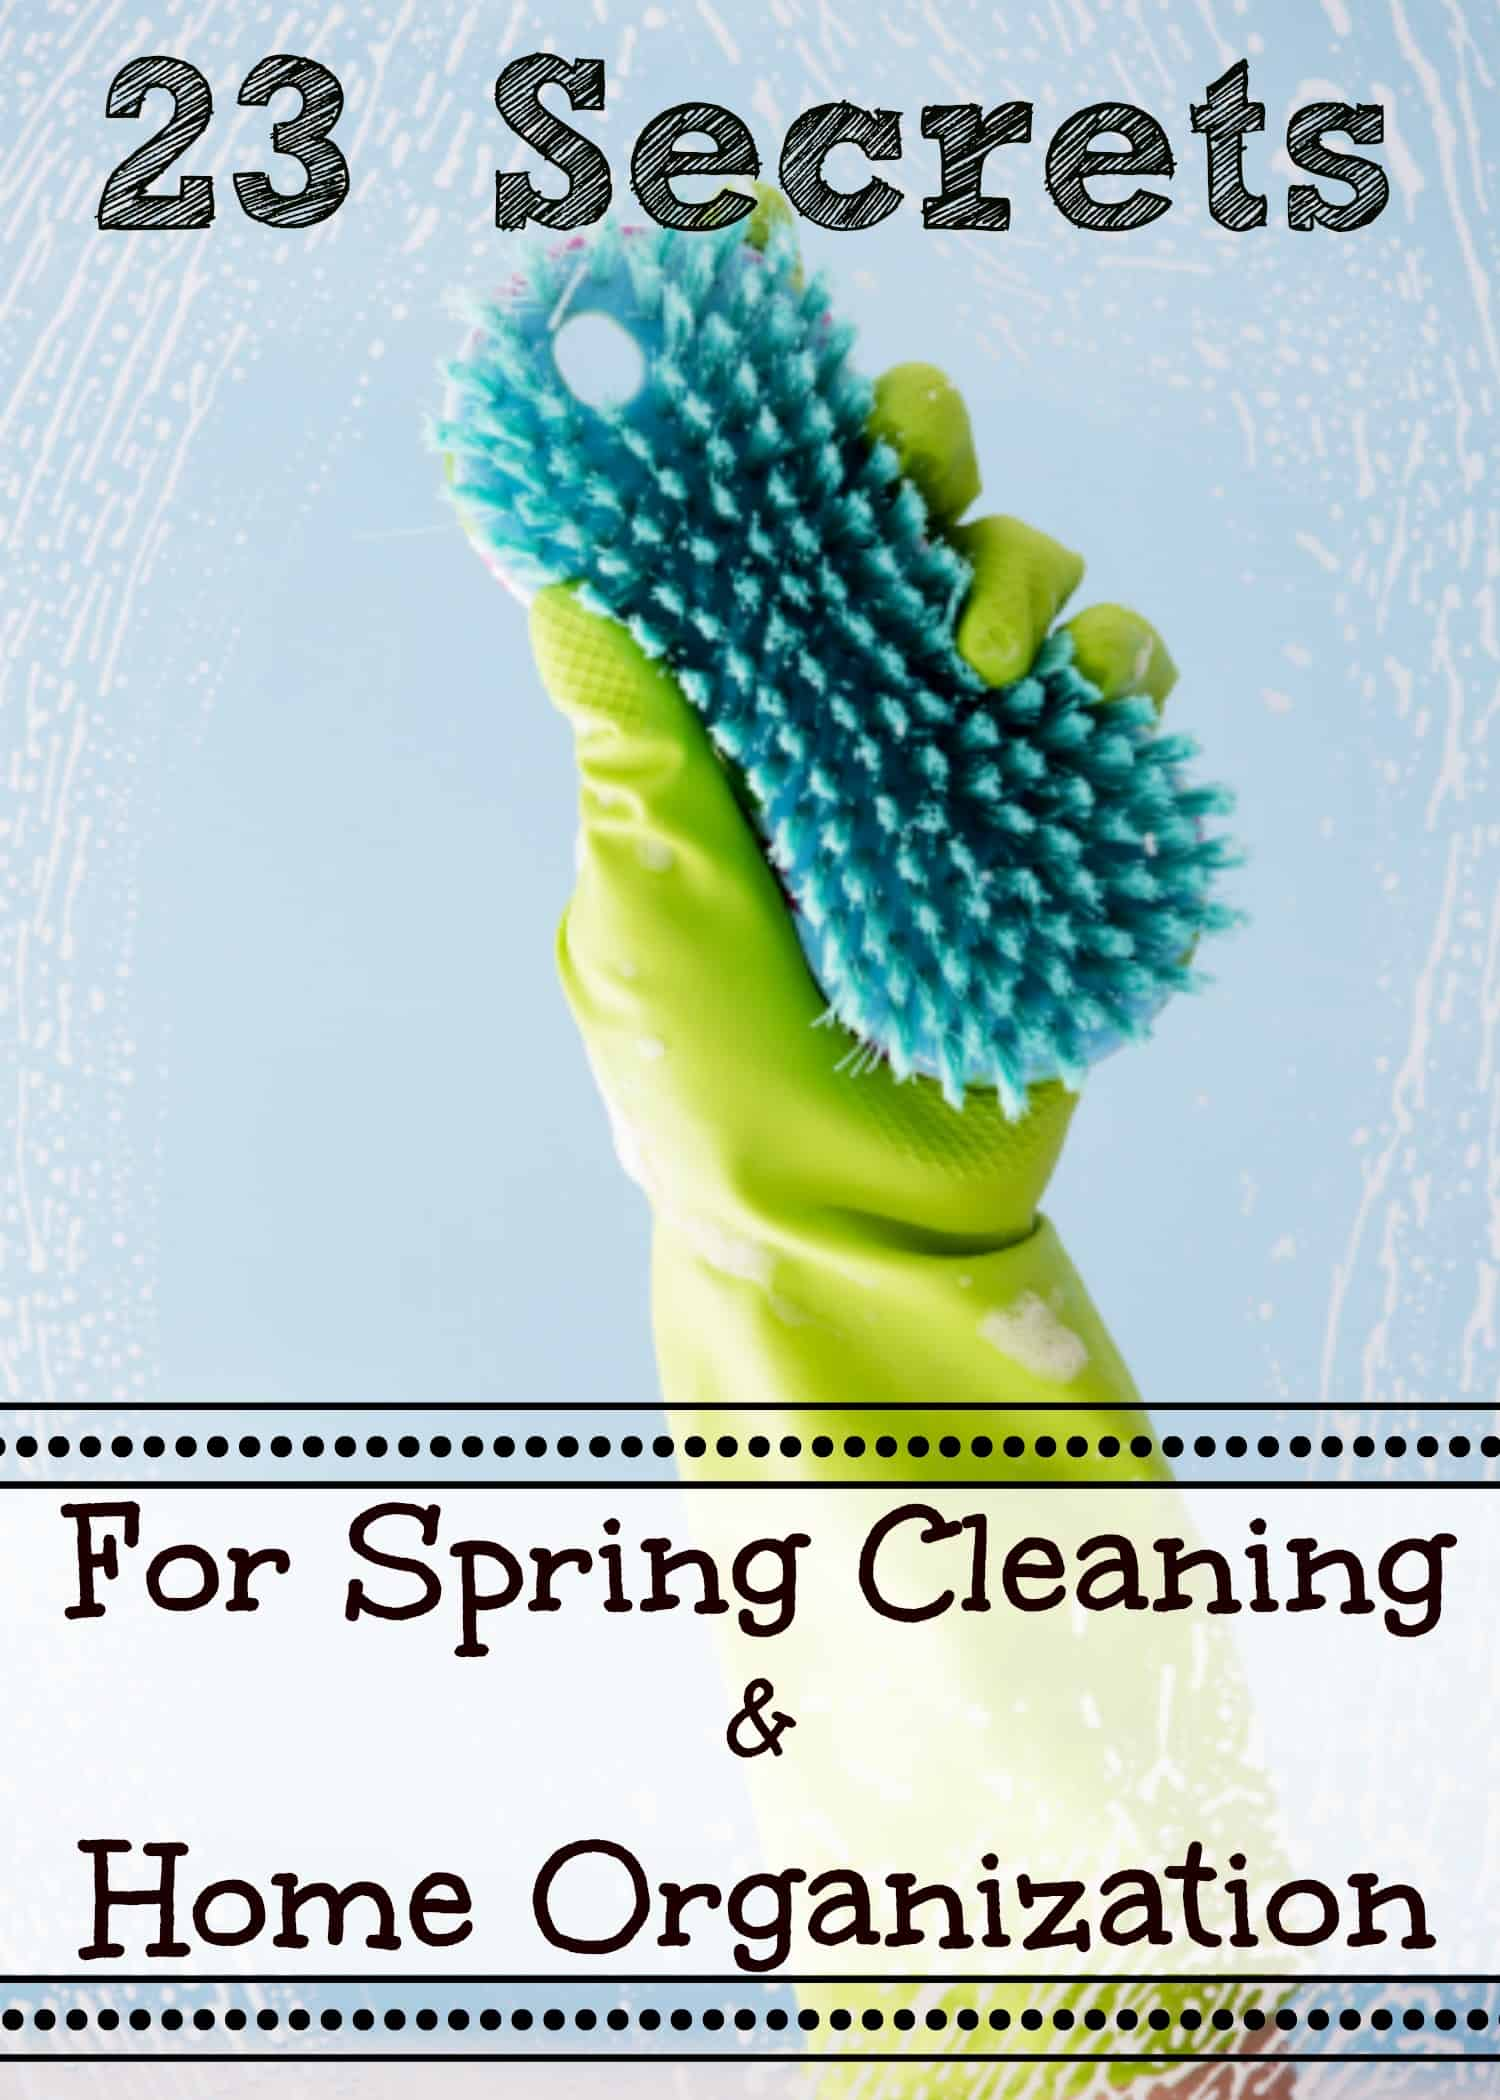 happymoneysaver.com | 23 Amazing Secrets for Spring Cleaning and Home Organization